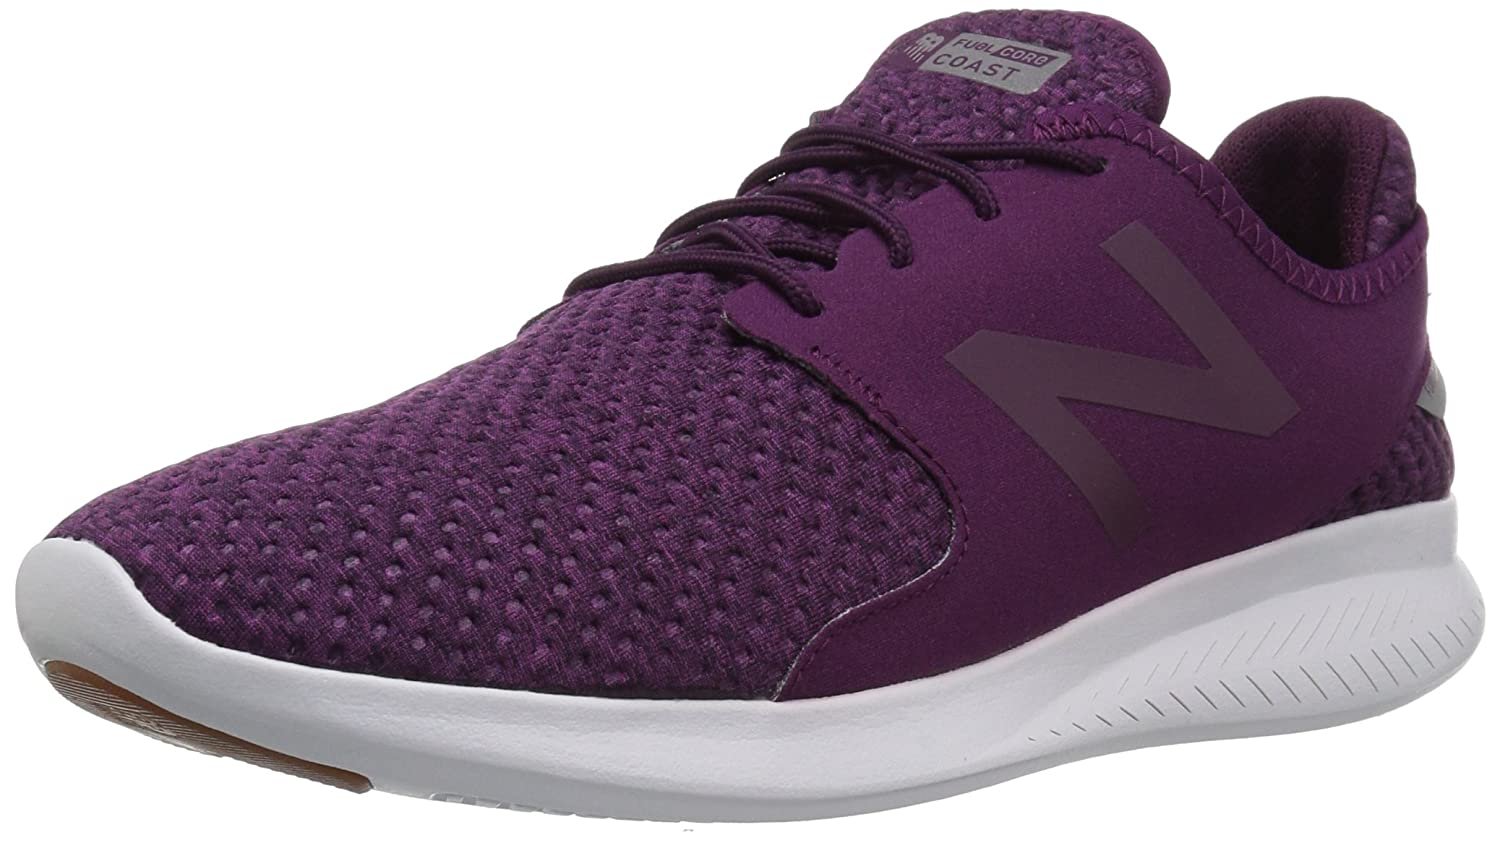 New Balance Women's Coast V3 Running Shoe B01N5J4Y63 85 D US|Mulberry/Silver